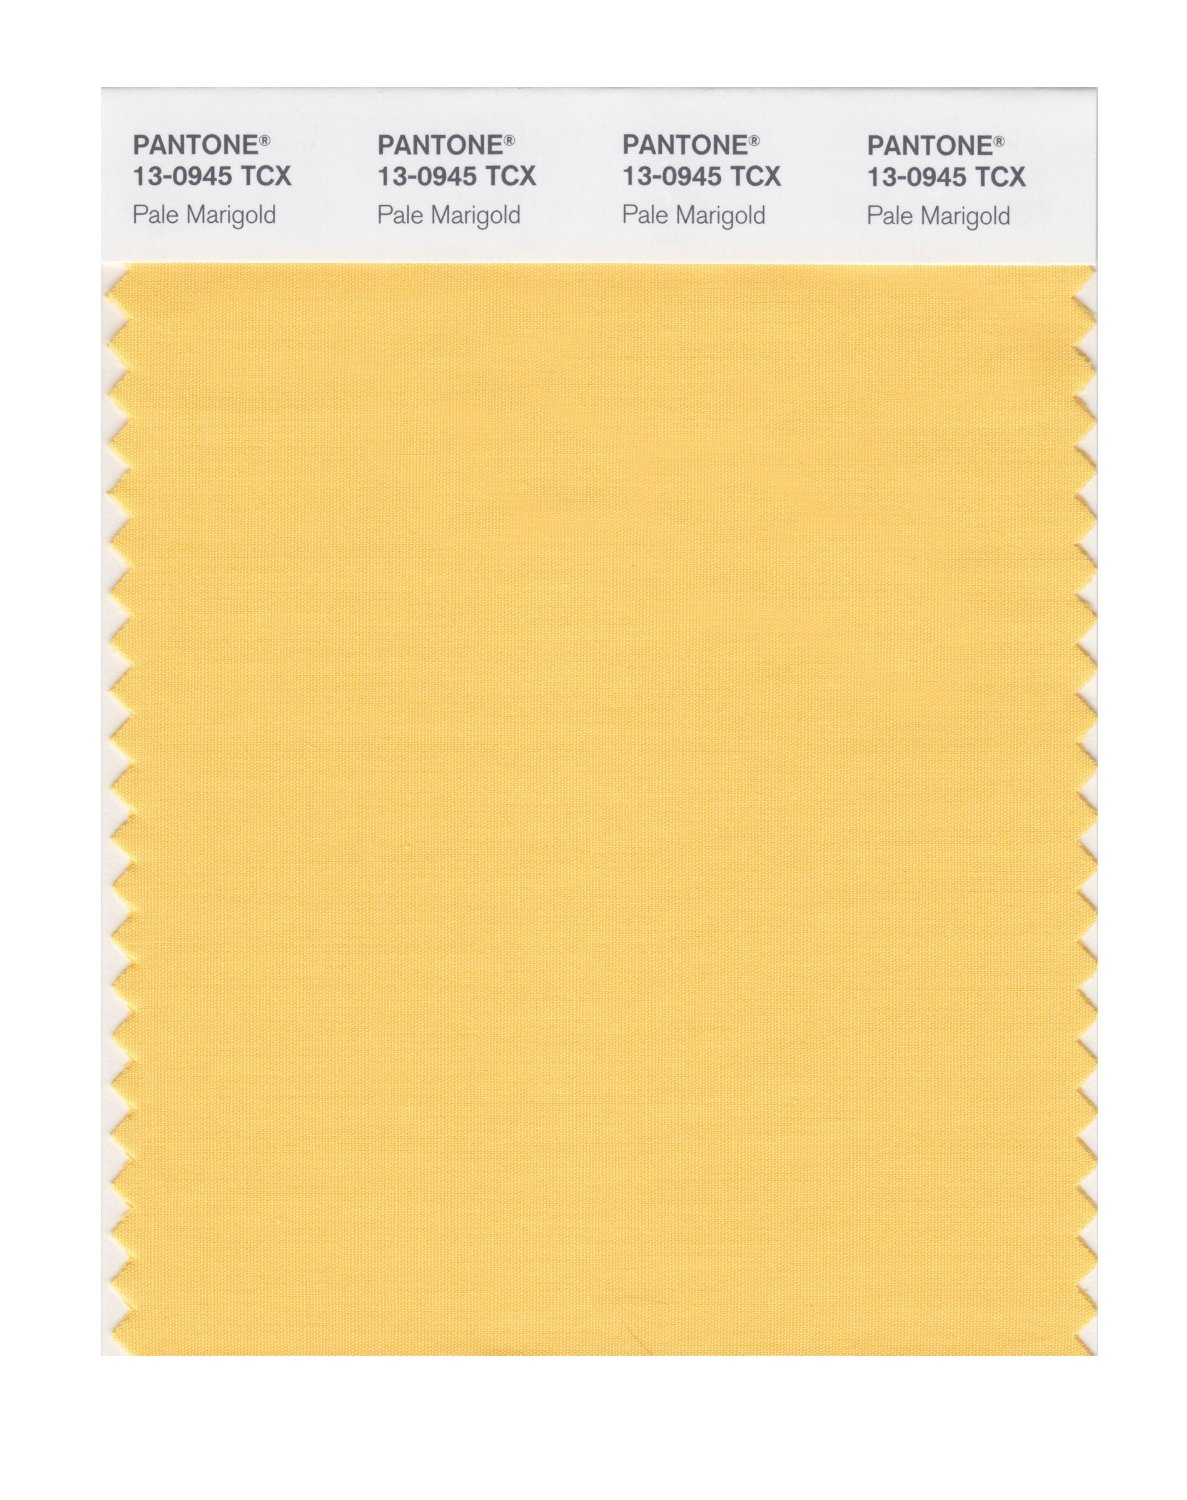 Pantone Smart Swatch 13-0945 Pale Marigold